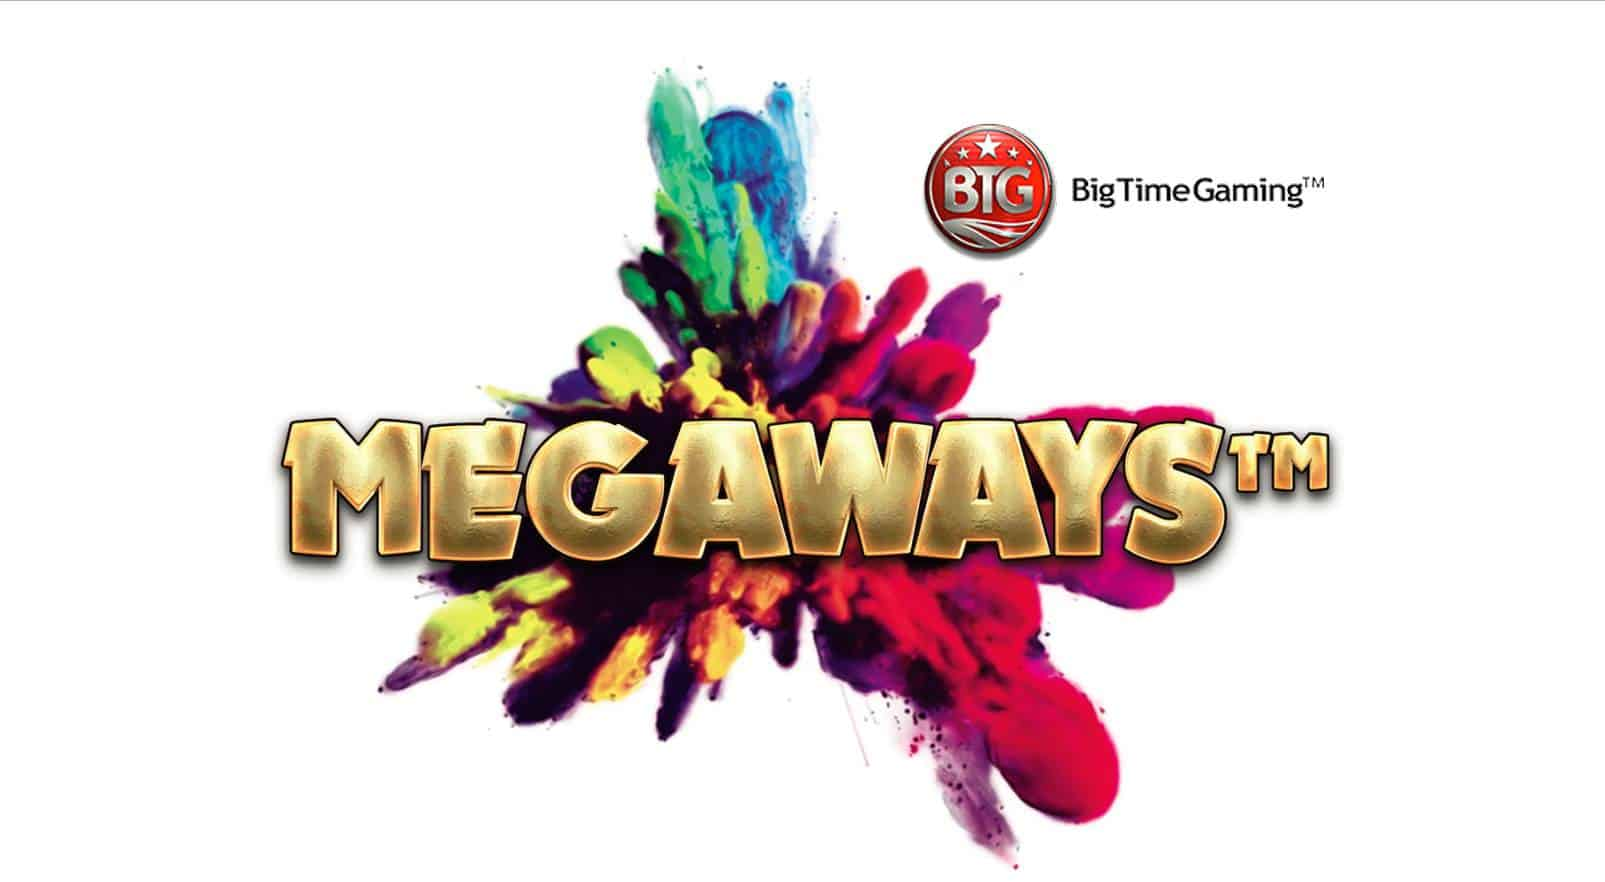 BTG (BigTime Gaming) Megaways can be seen in this image.